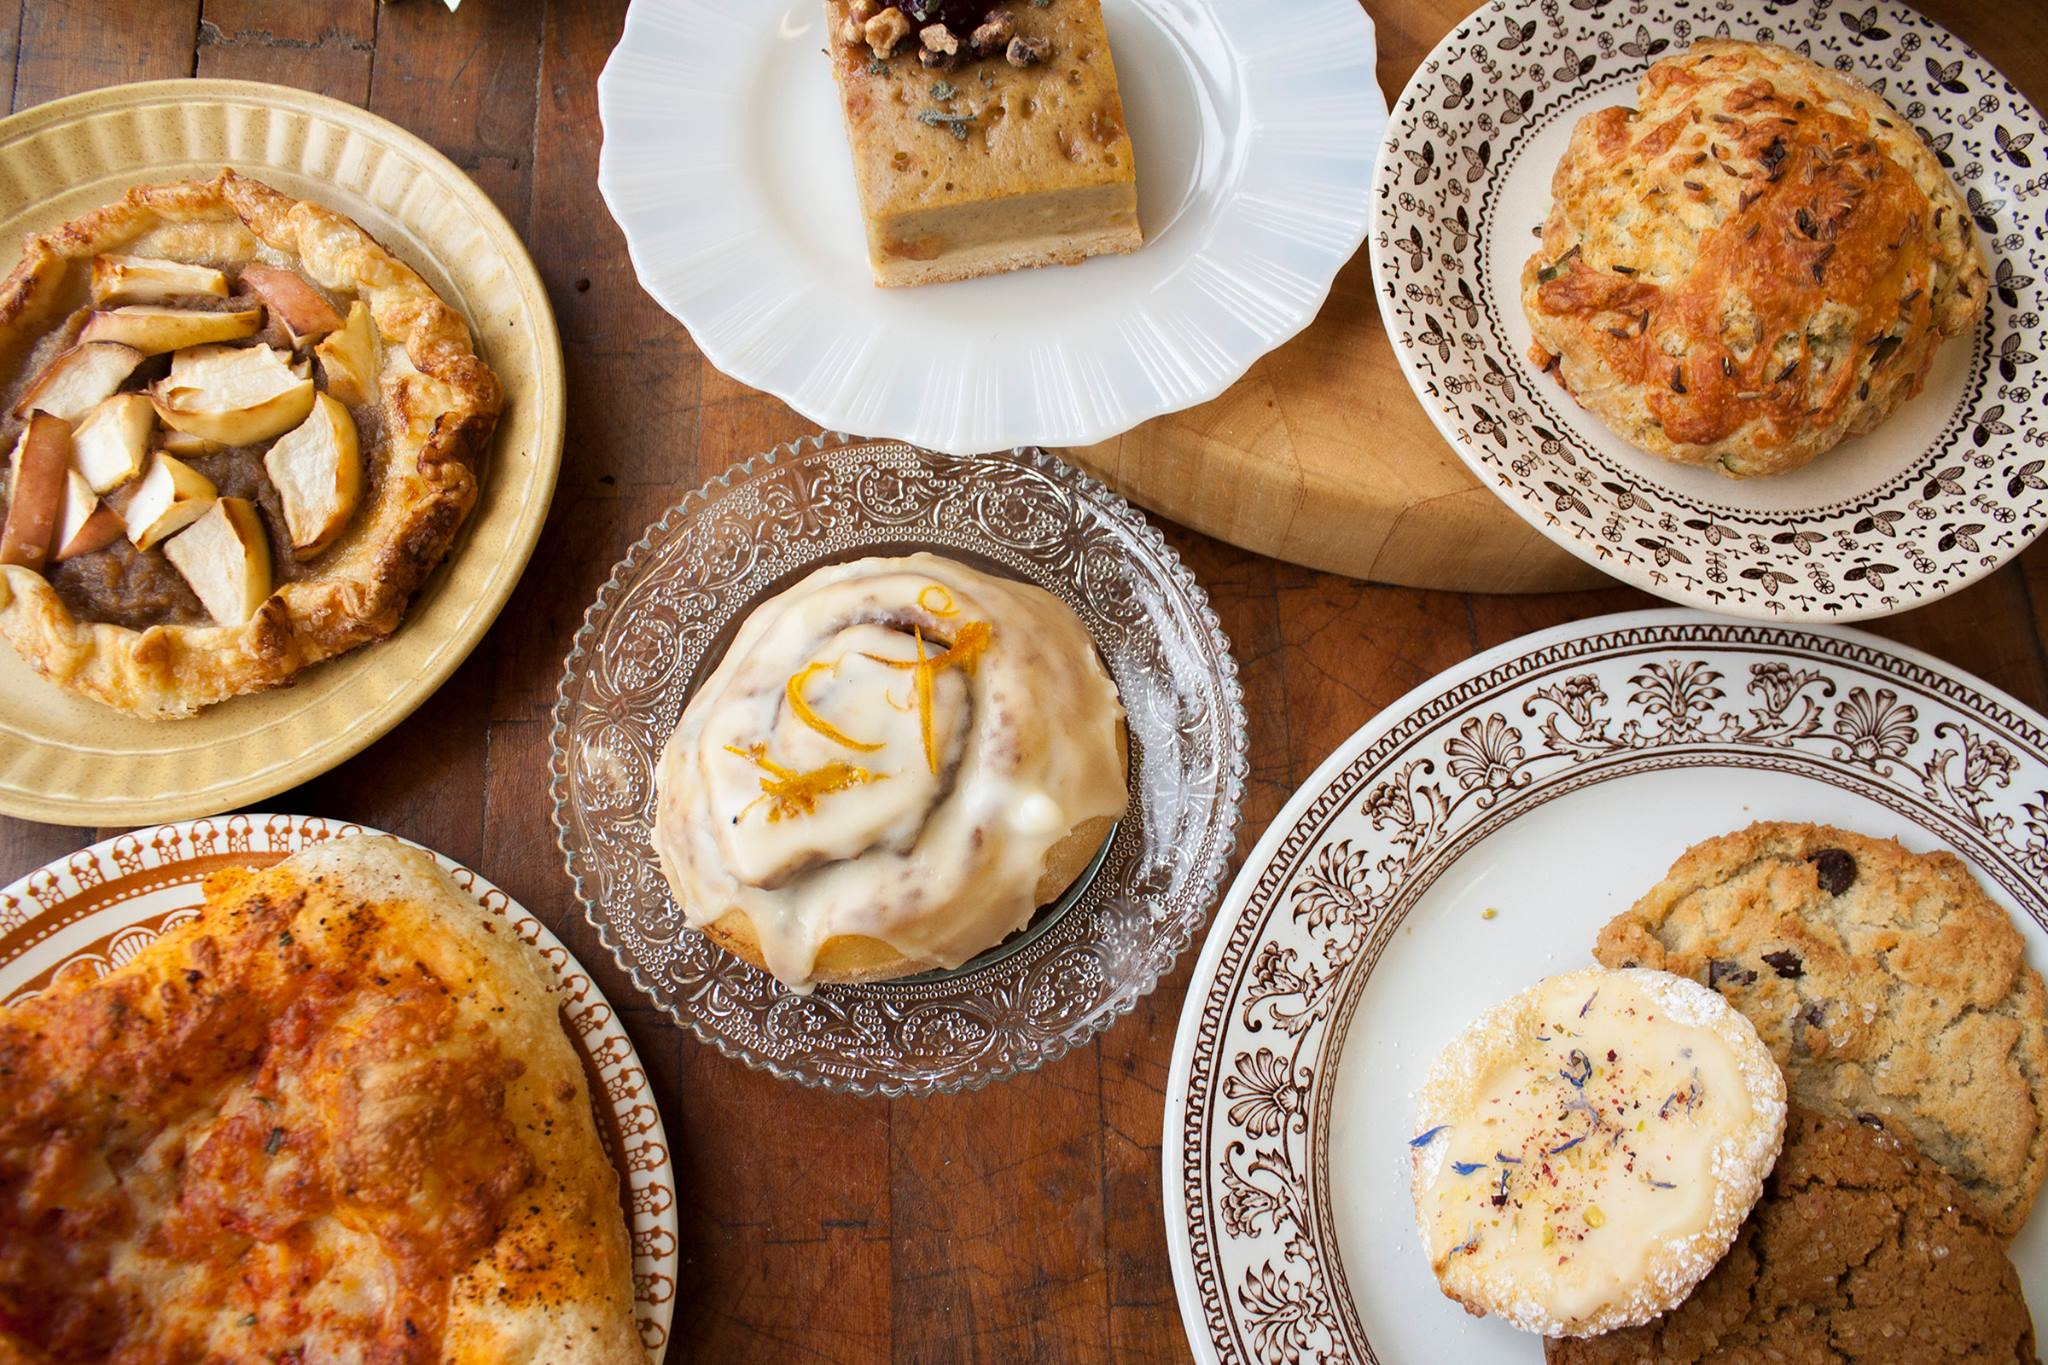 A selection of fall pastries on patterned plates.